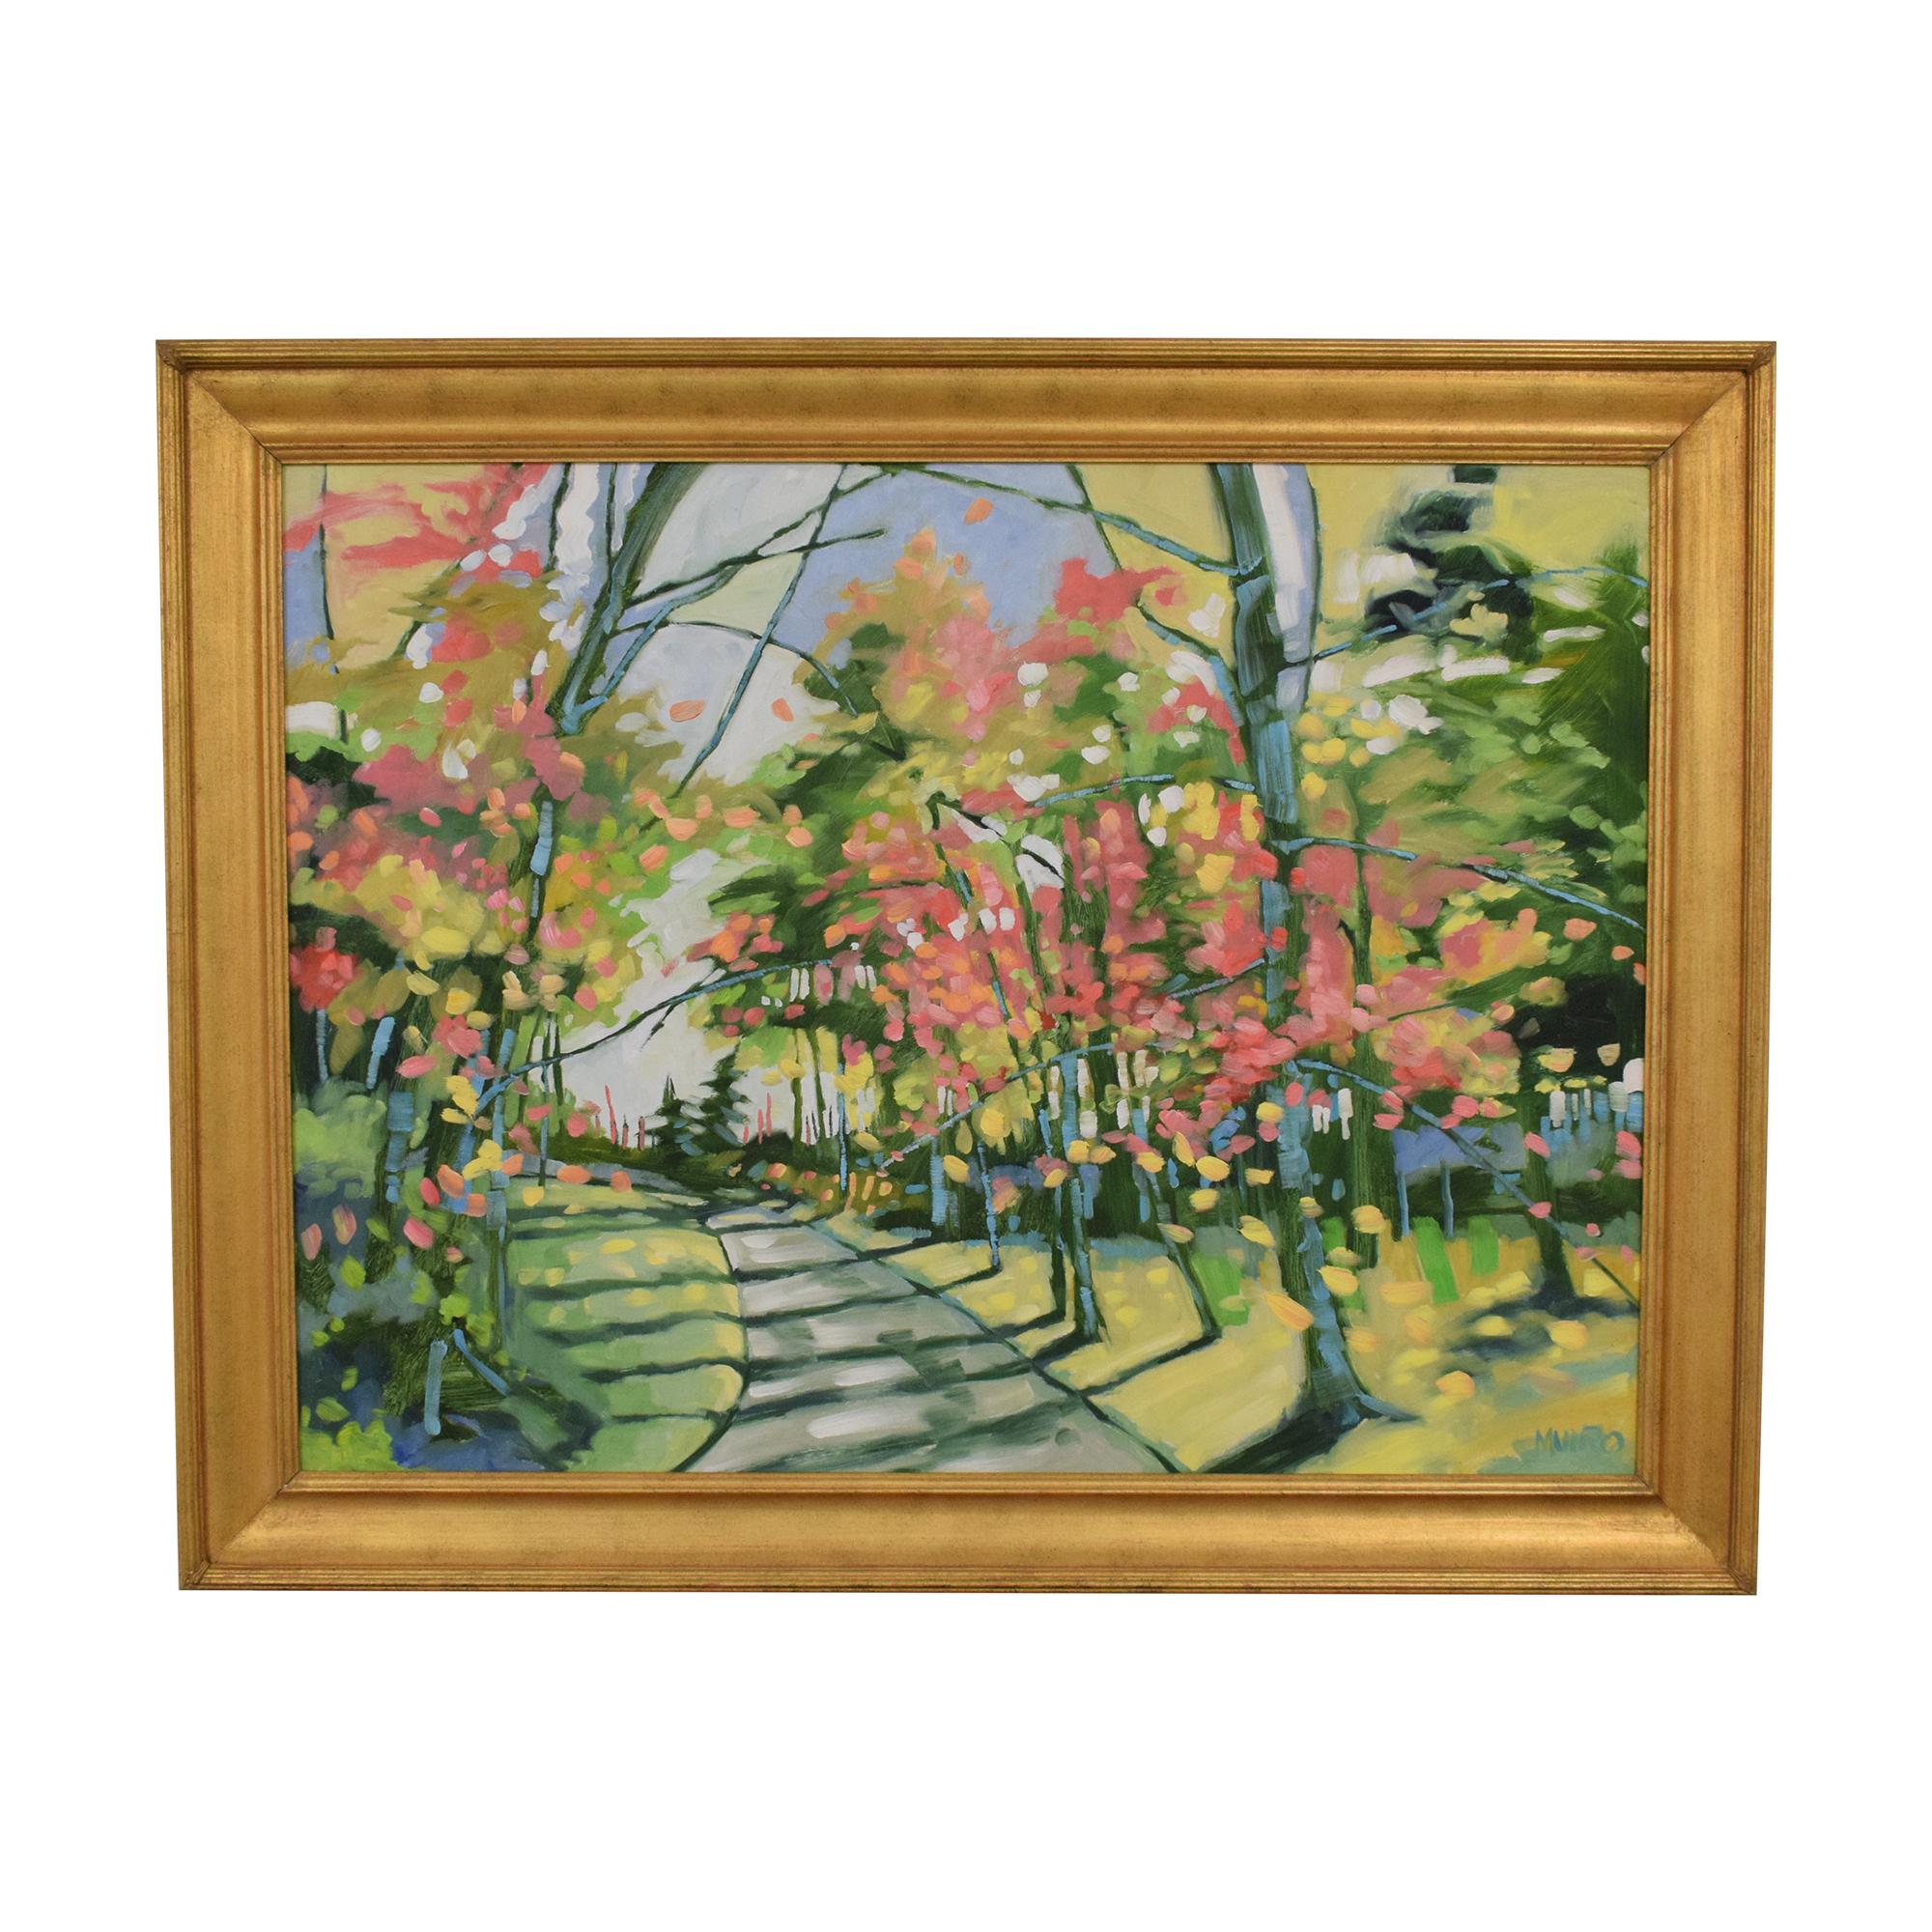 Framed Landscape Wall Art on sale